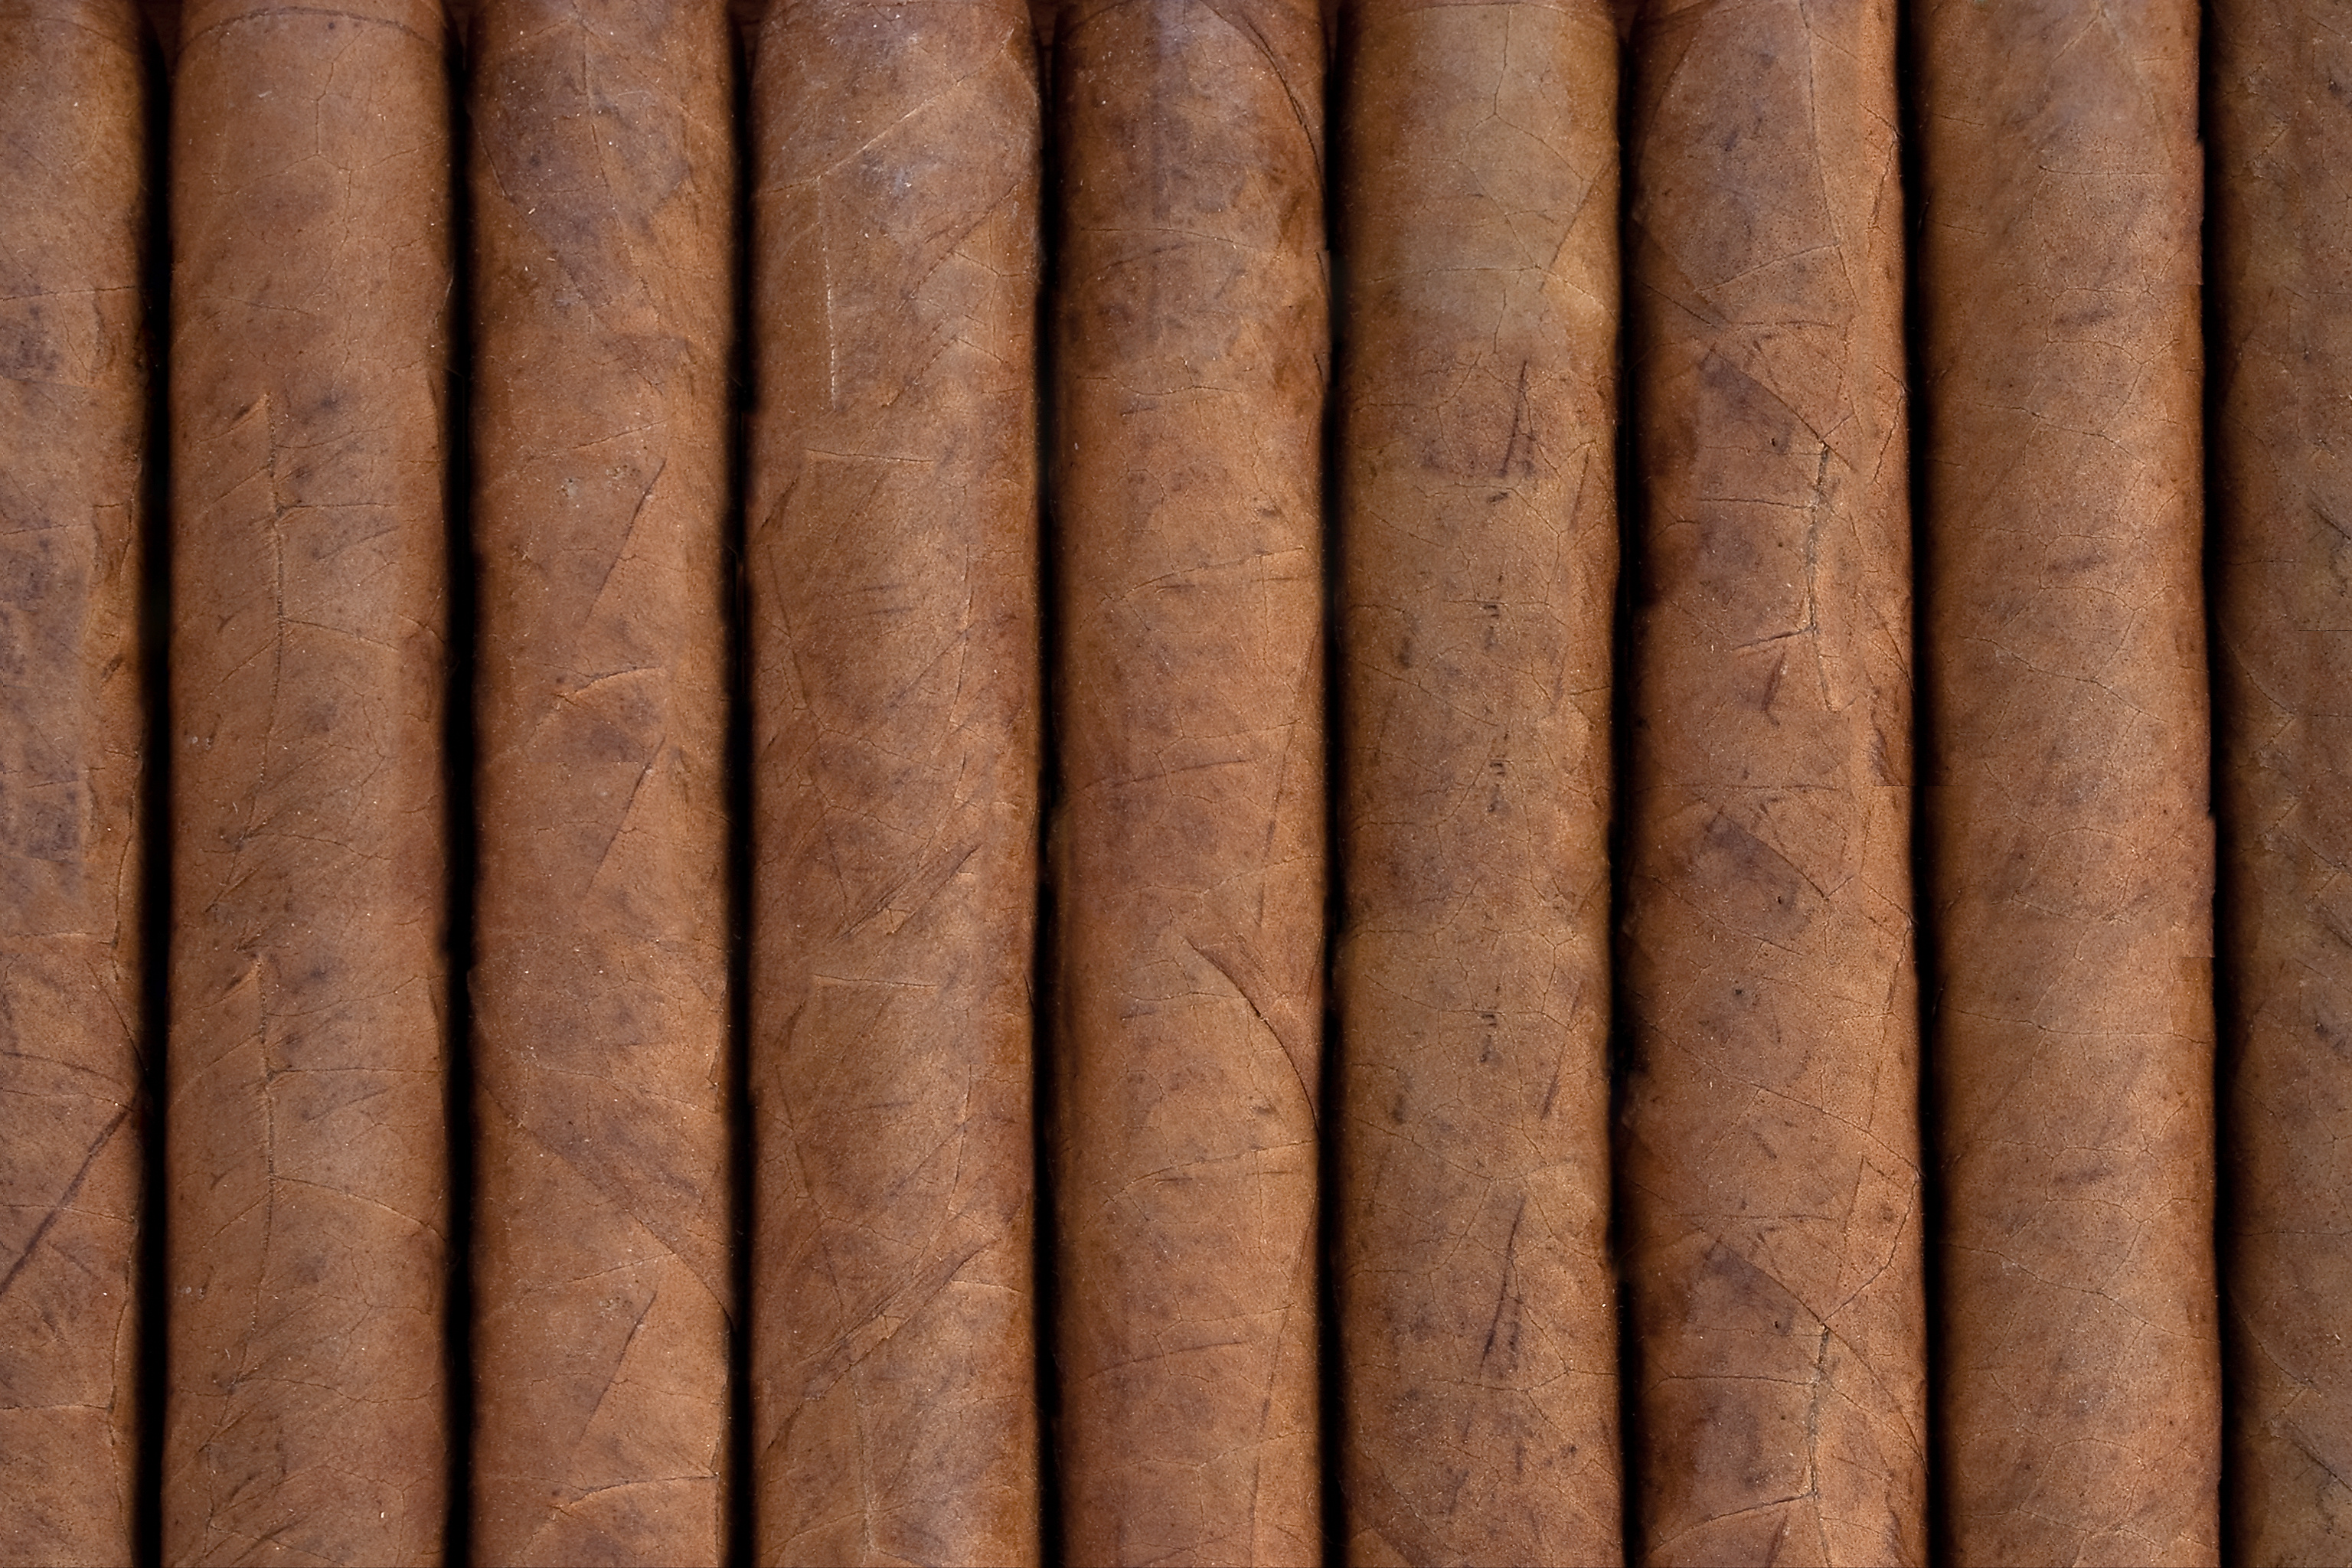 The Difference Between Hand Rolled And Machine Rolled Cigars